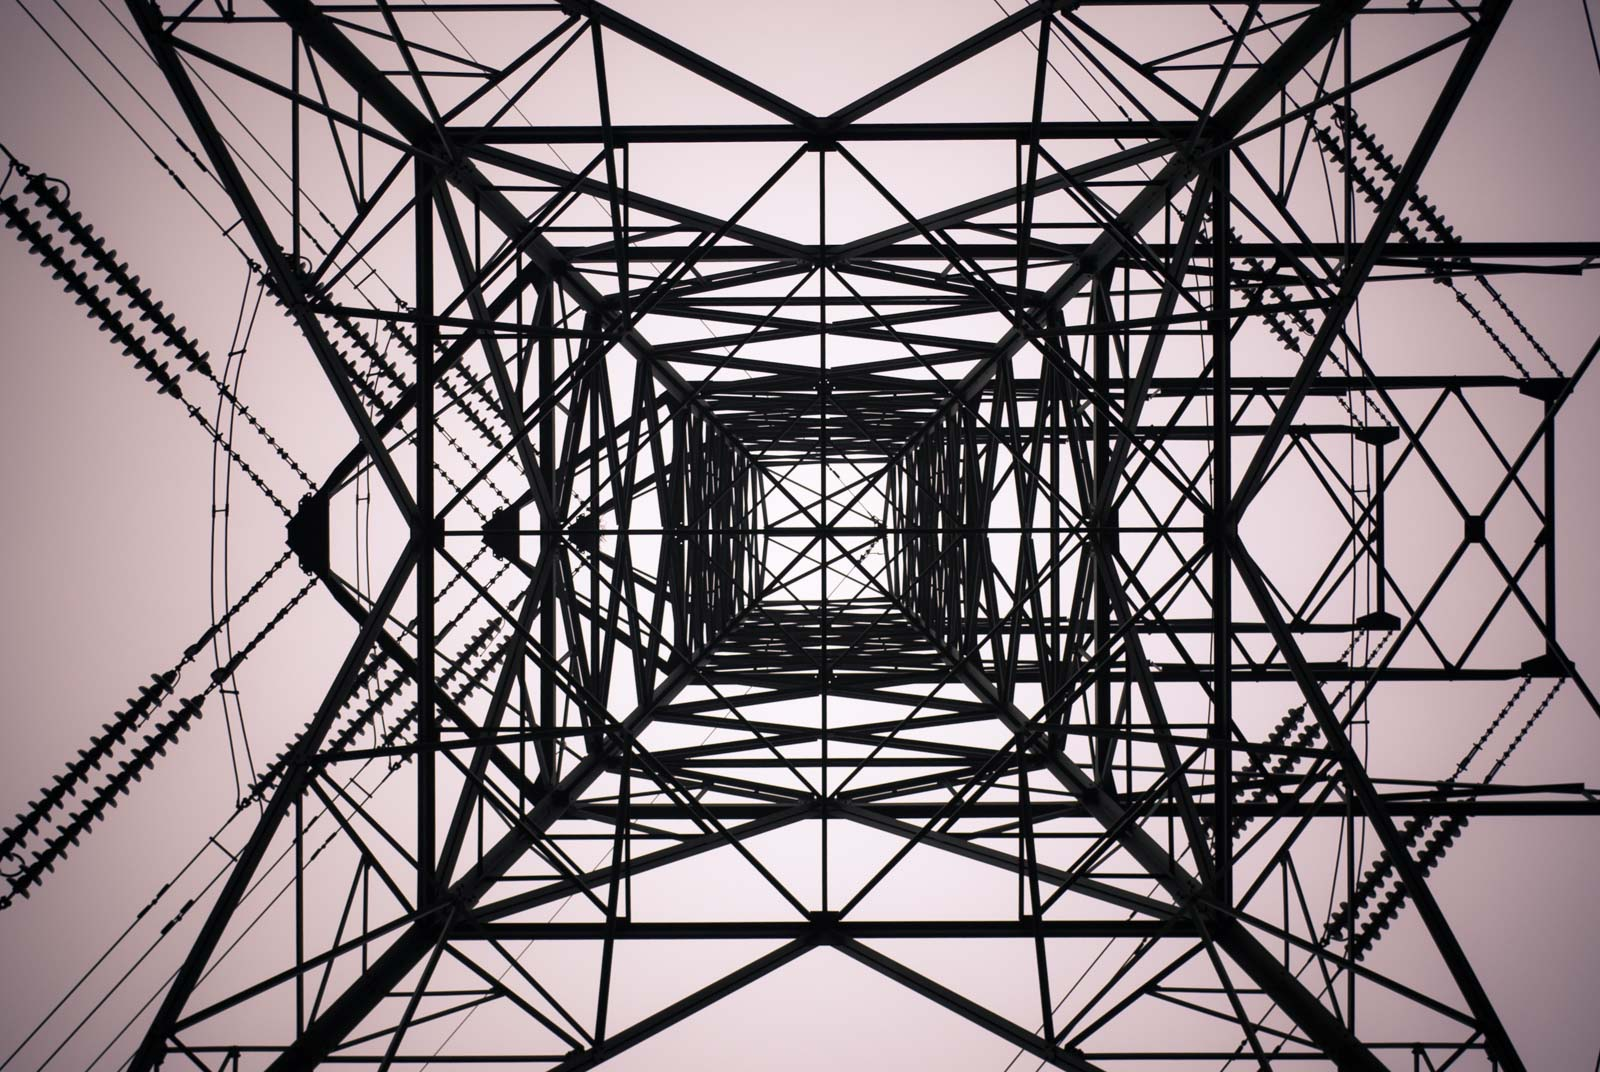 Poer pylon viewed from underneath